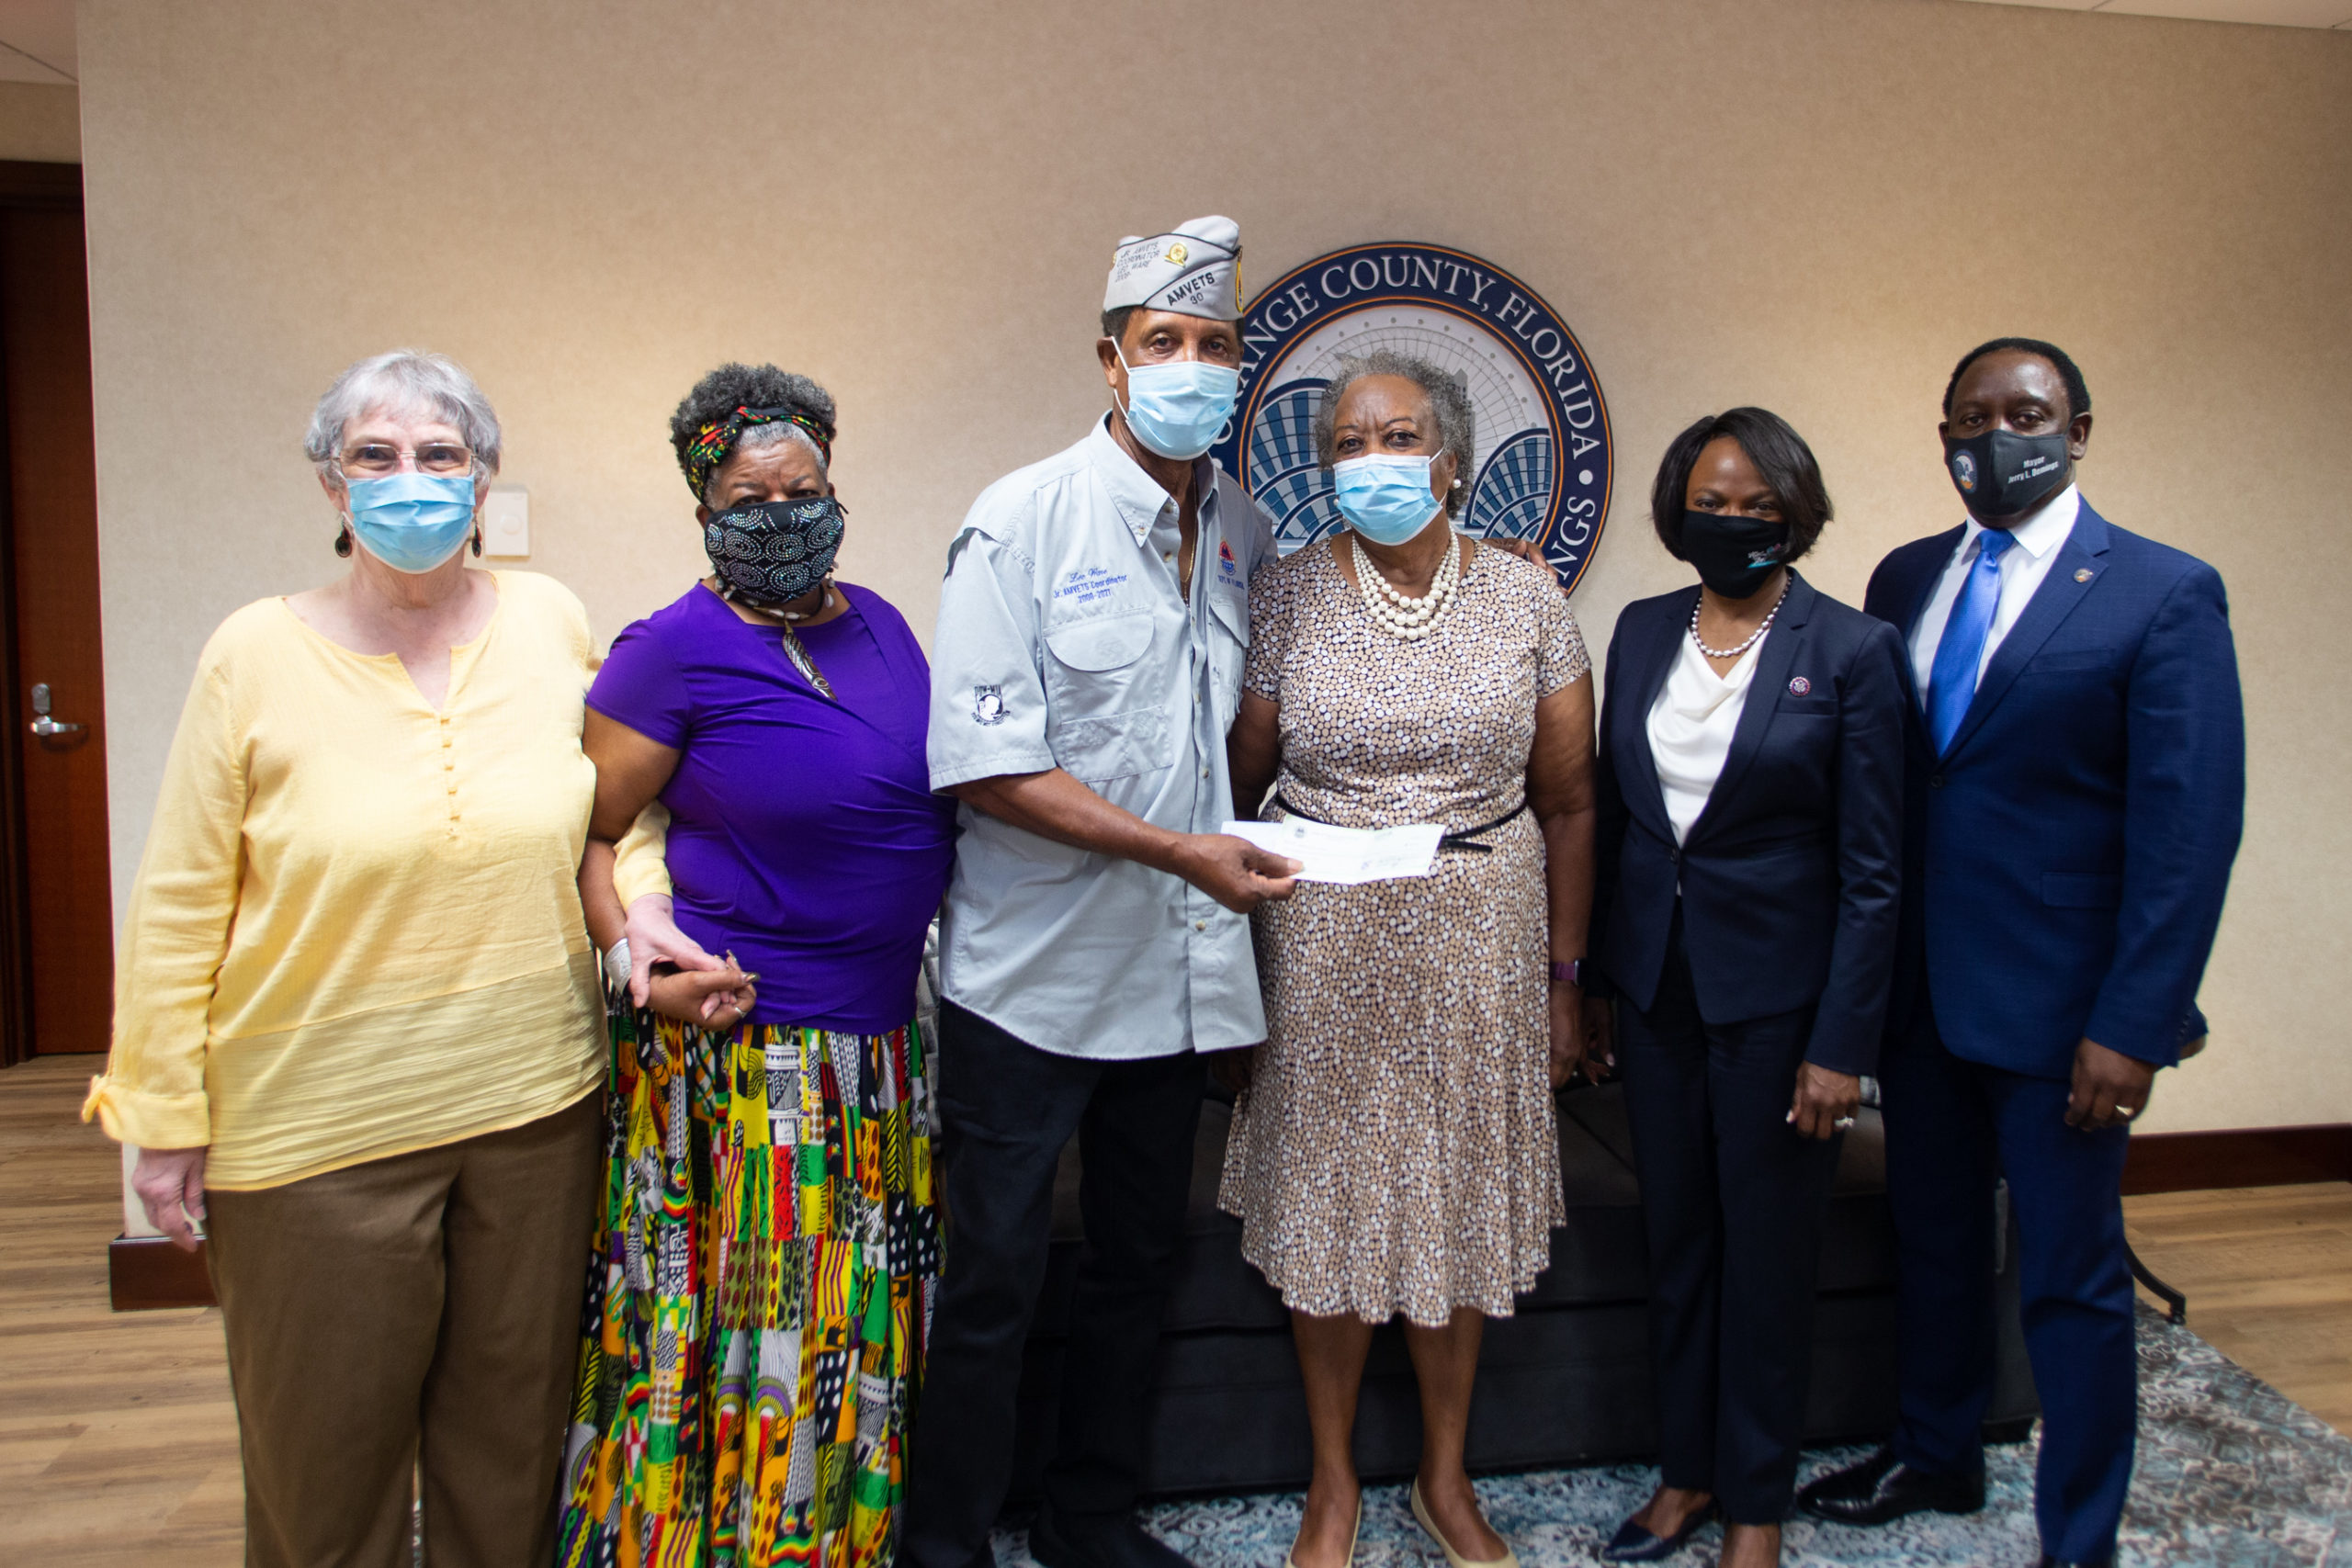 Mayor Demings and U.S. Representative Val Demings met with the Voices for our Father Legacy Foundation.